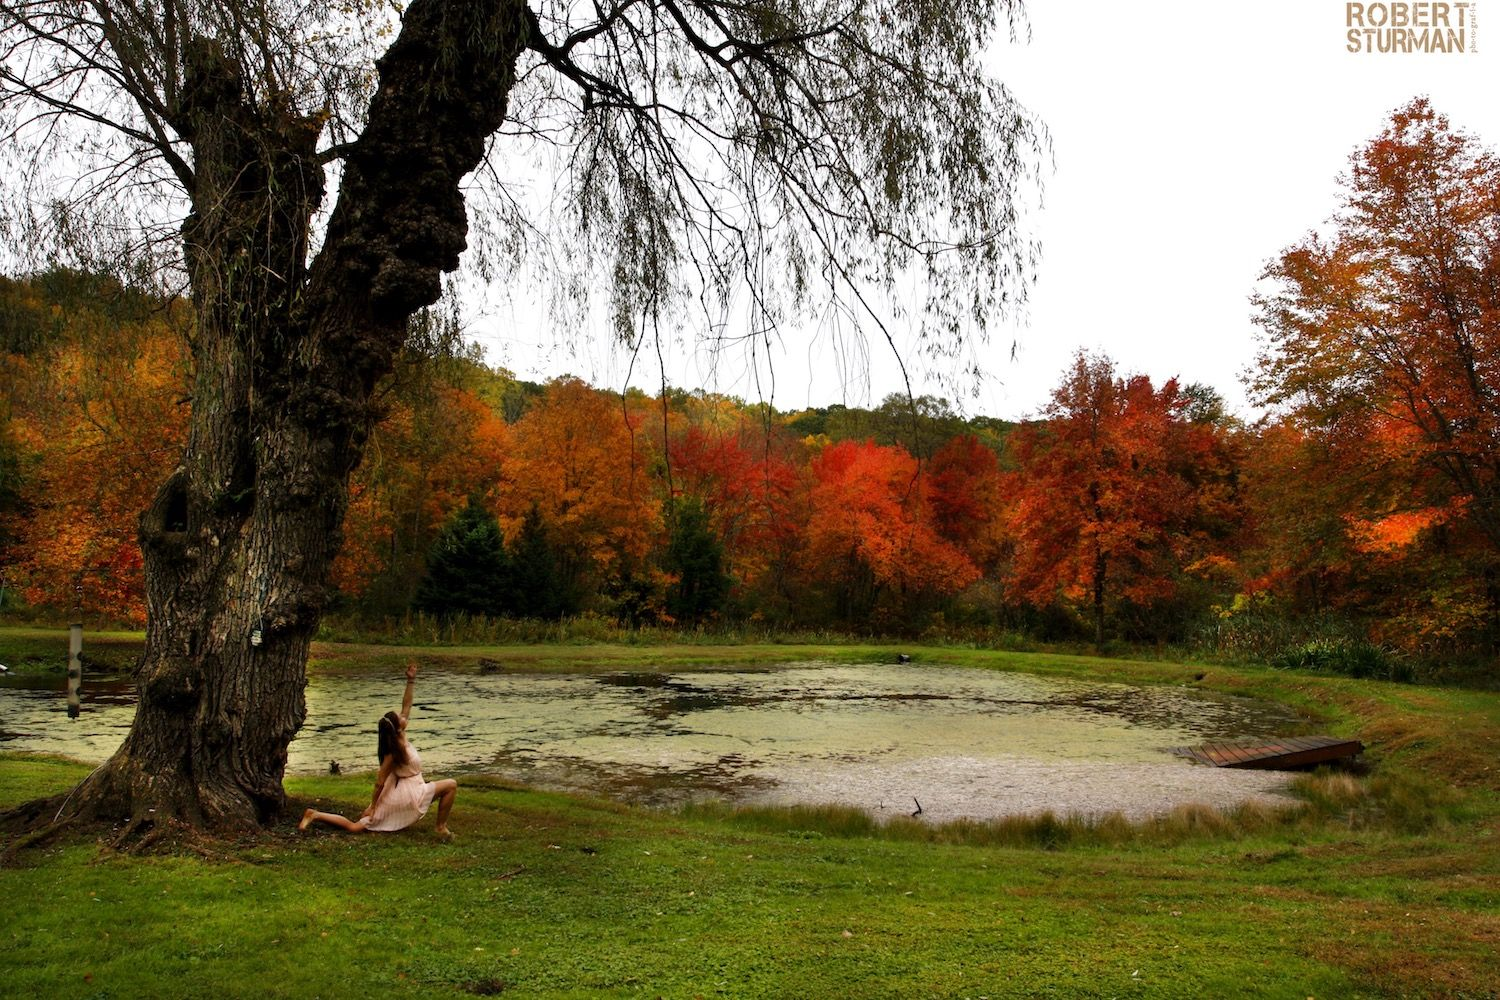 Robert Sturman photograph of a yoga pose with fall colors in the trees